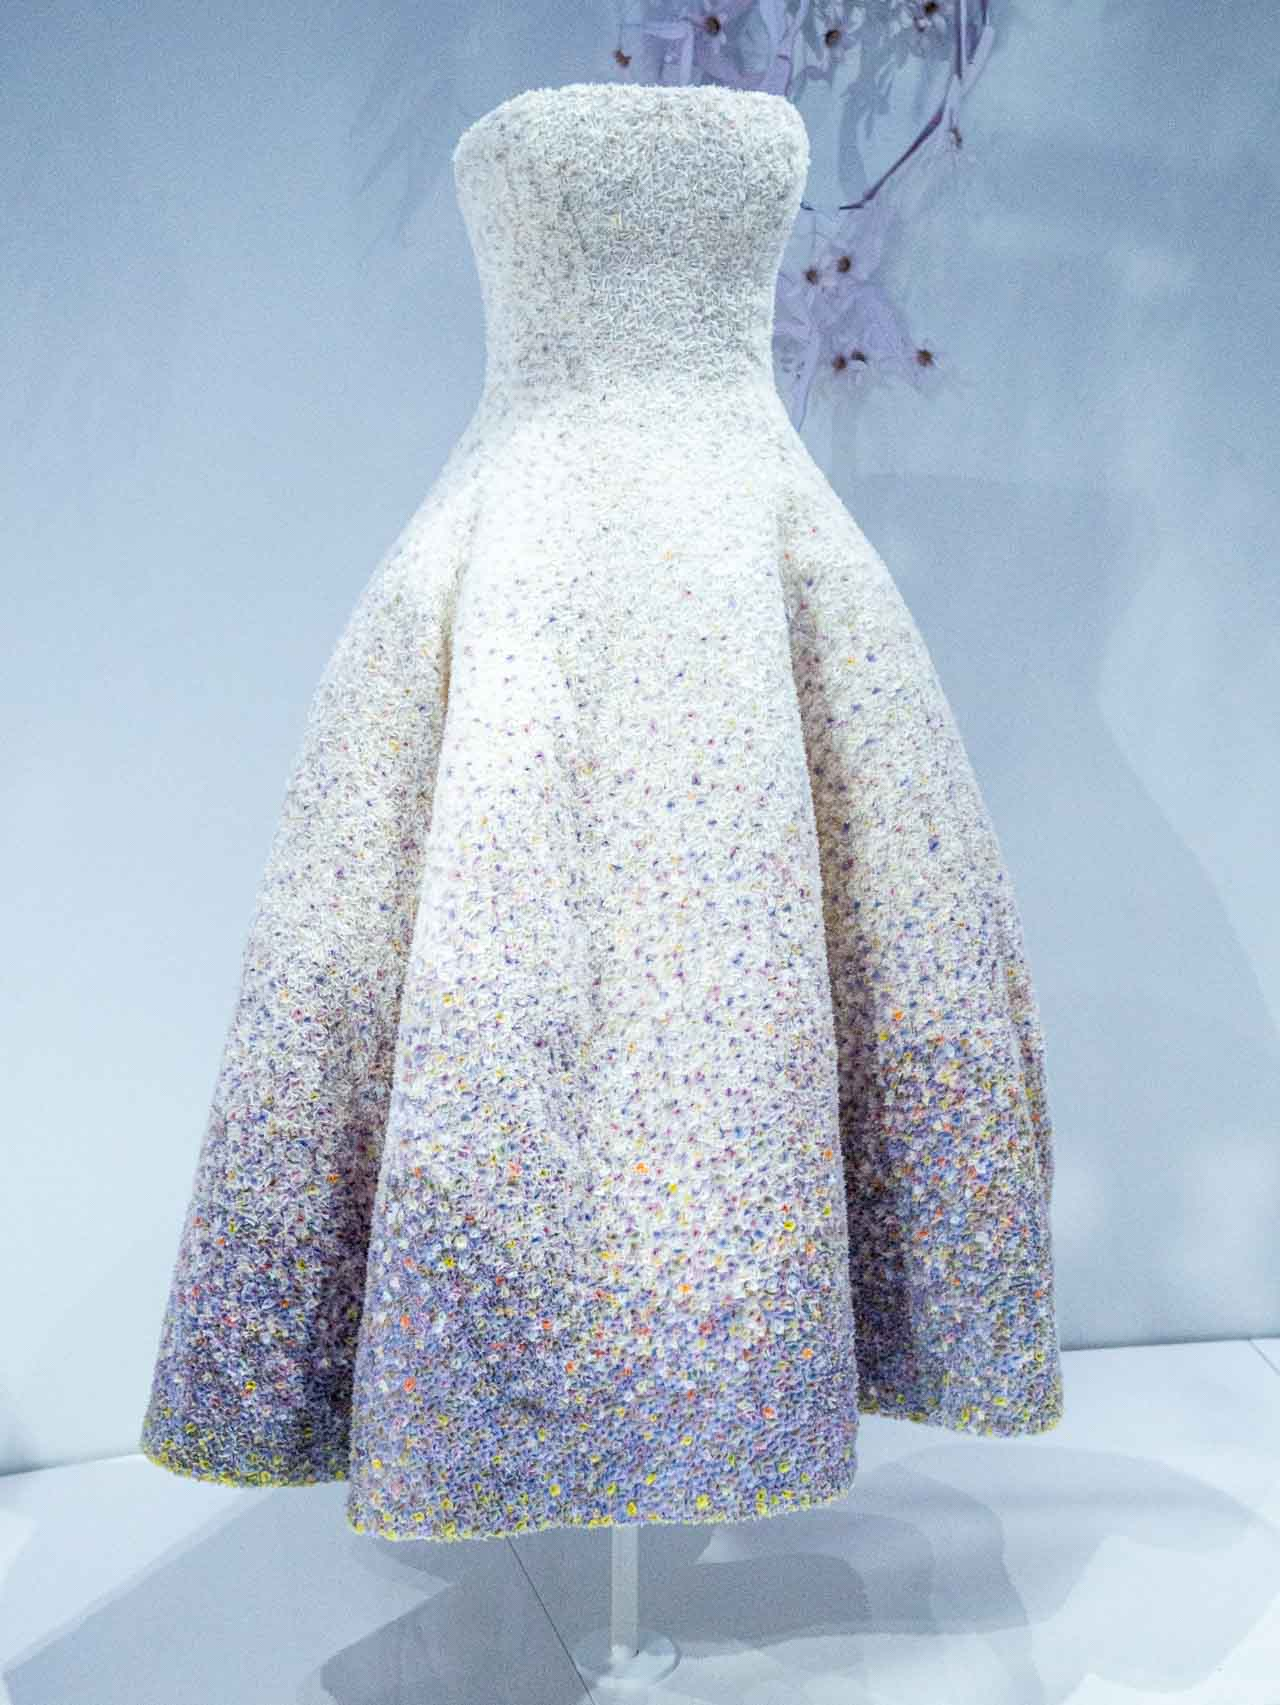 White and lilac embellished dress. Christian Dior by Raf Simons, Haute Couture, Autumn-Winter 2012. Taken at the V&A exhibition © The Cutting Class, 2019.